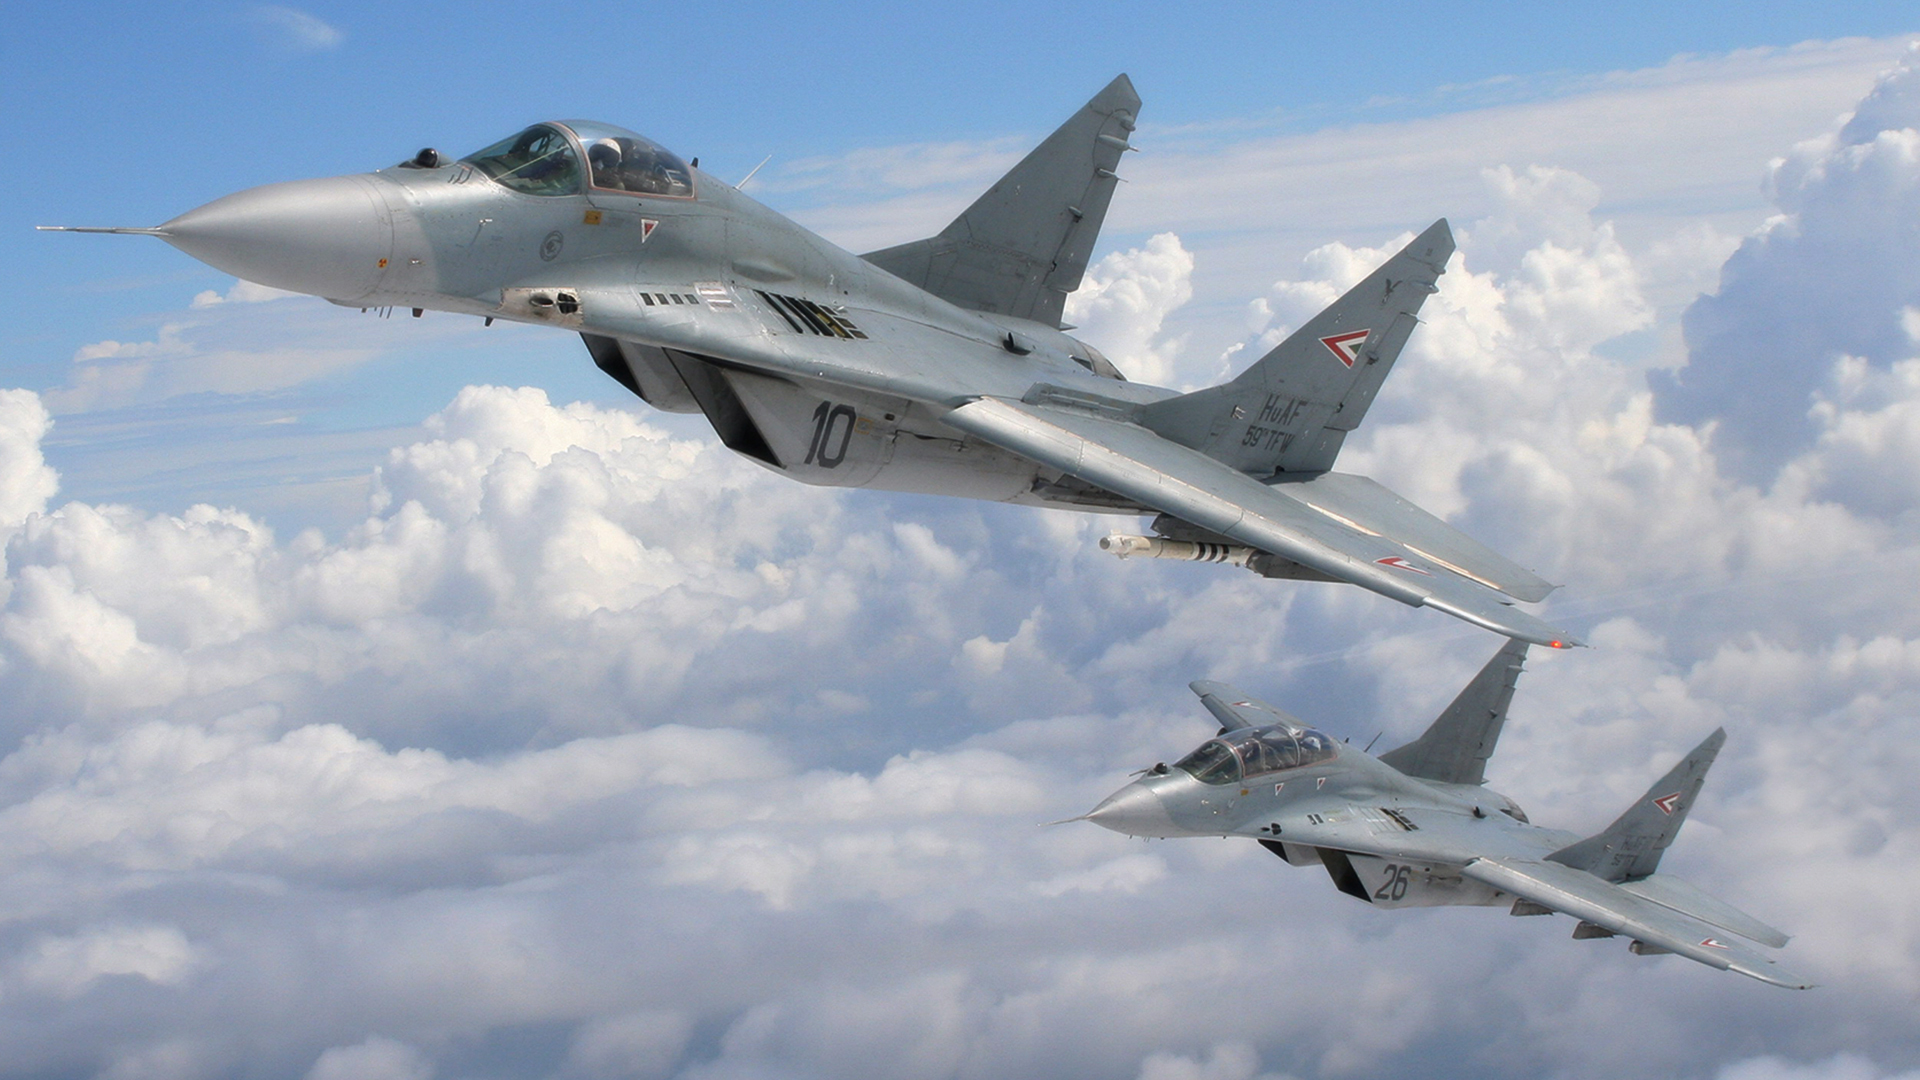 Mig 35 Hd Wallpaper: Mikoyan MiG-29 Full HD Wallpaper And Background Image